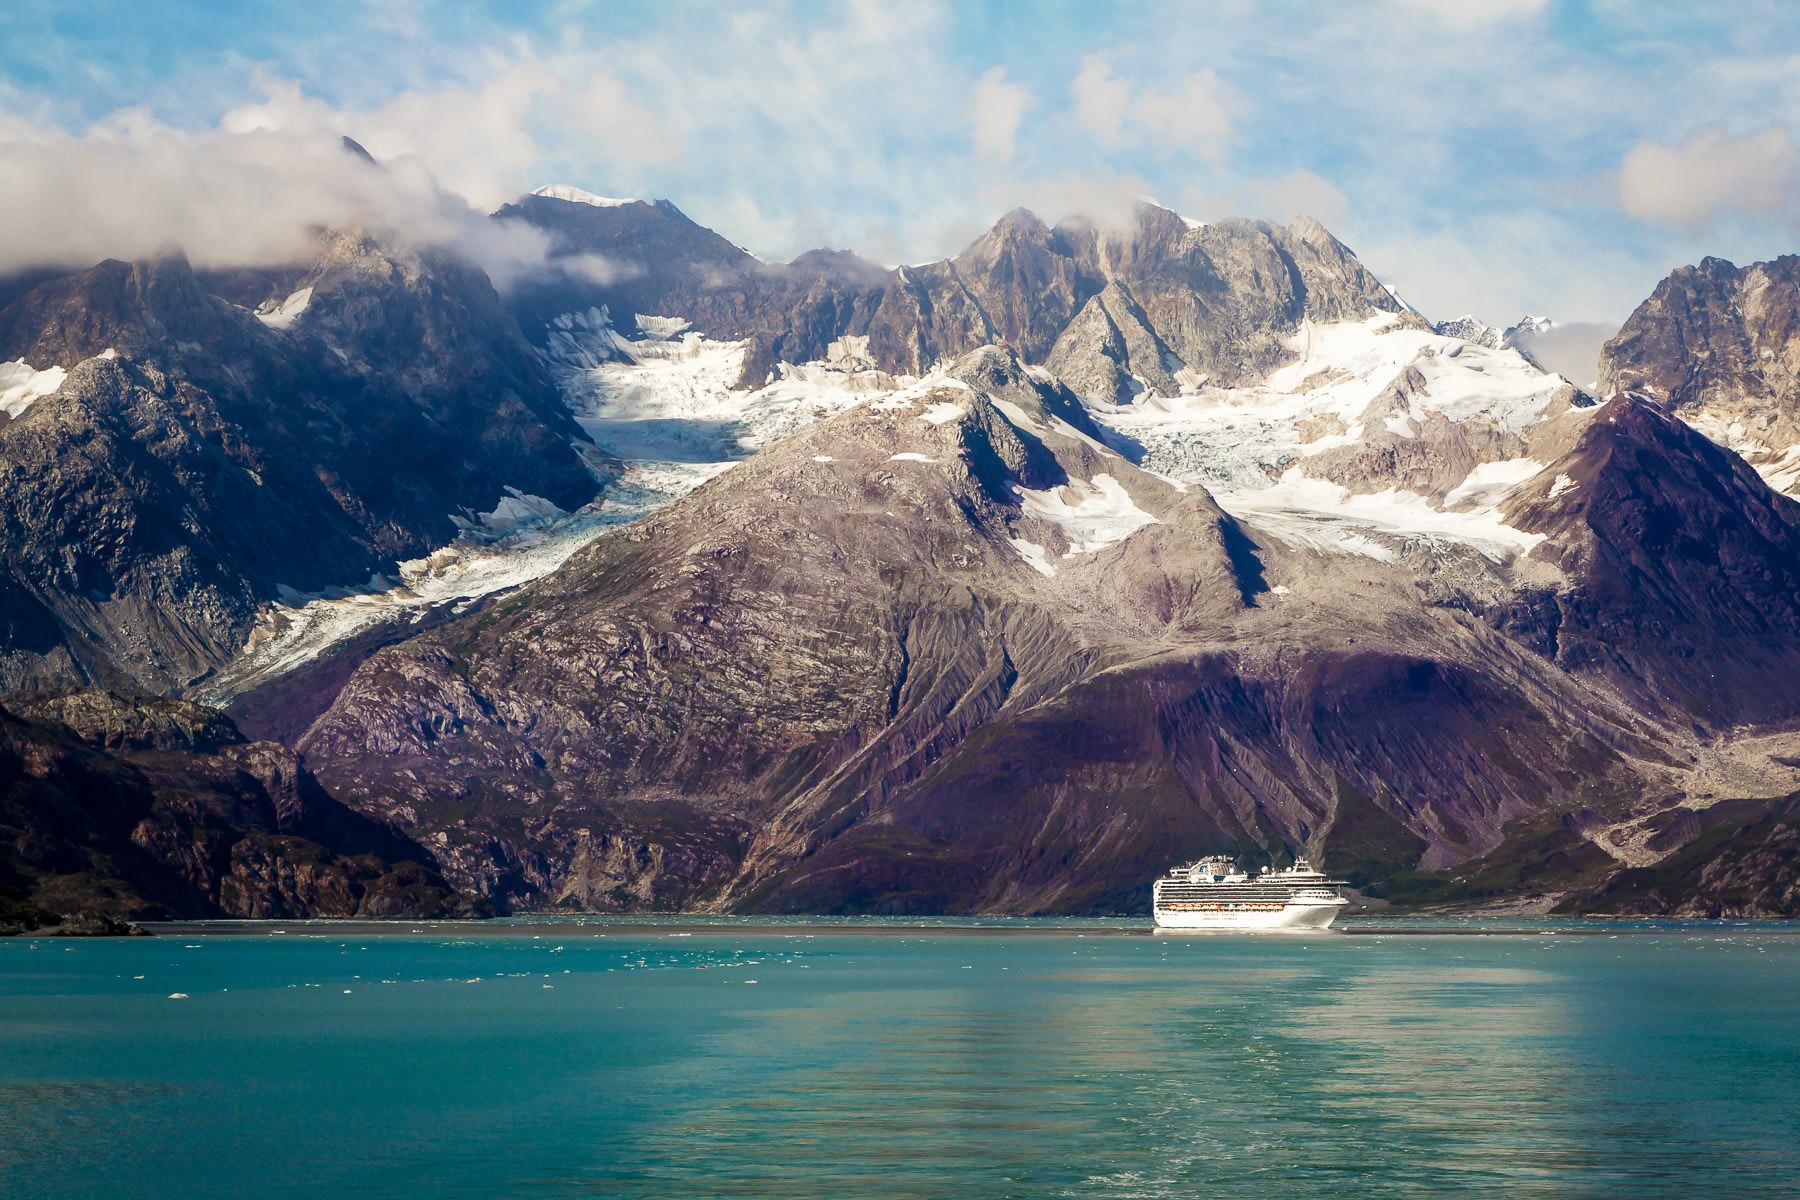 The cruise ship Sapphire Princess sails Glacier Bay in Alaska's Glacier Bay National Park.